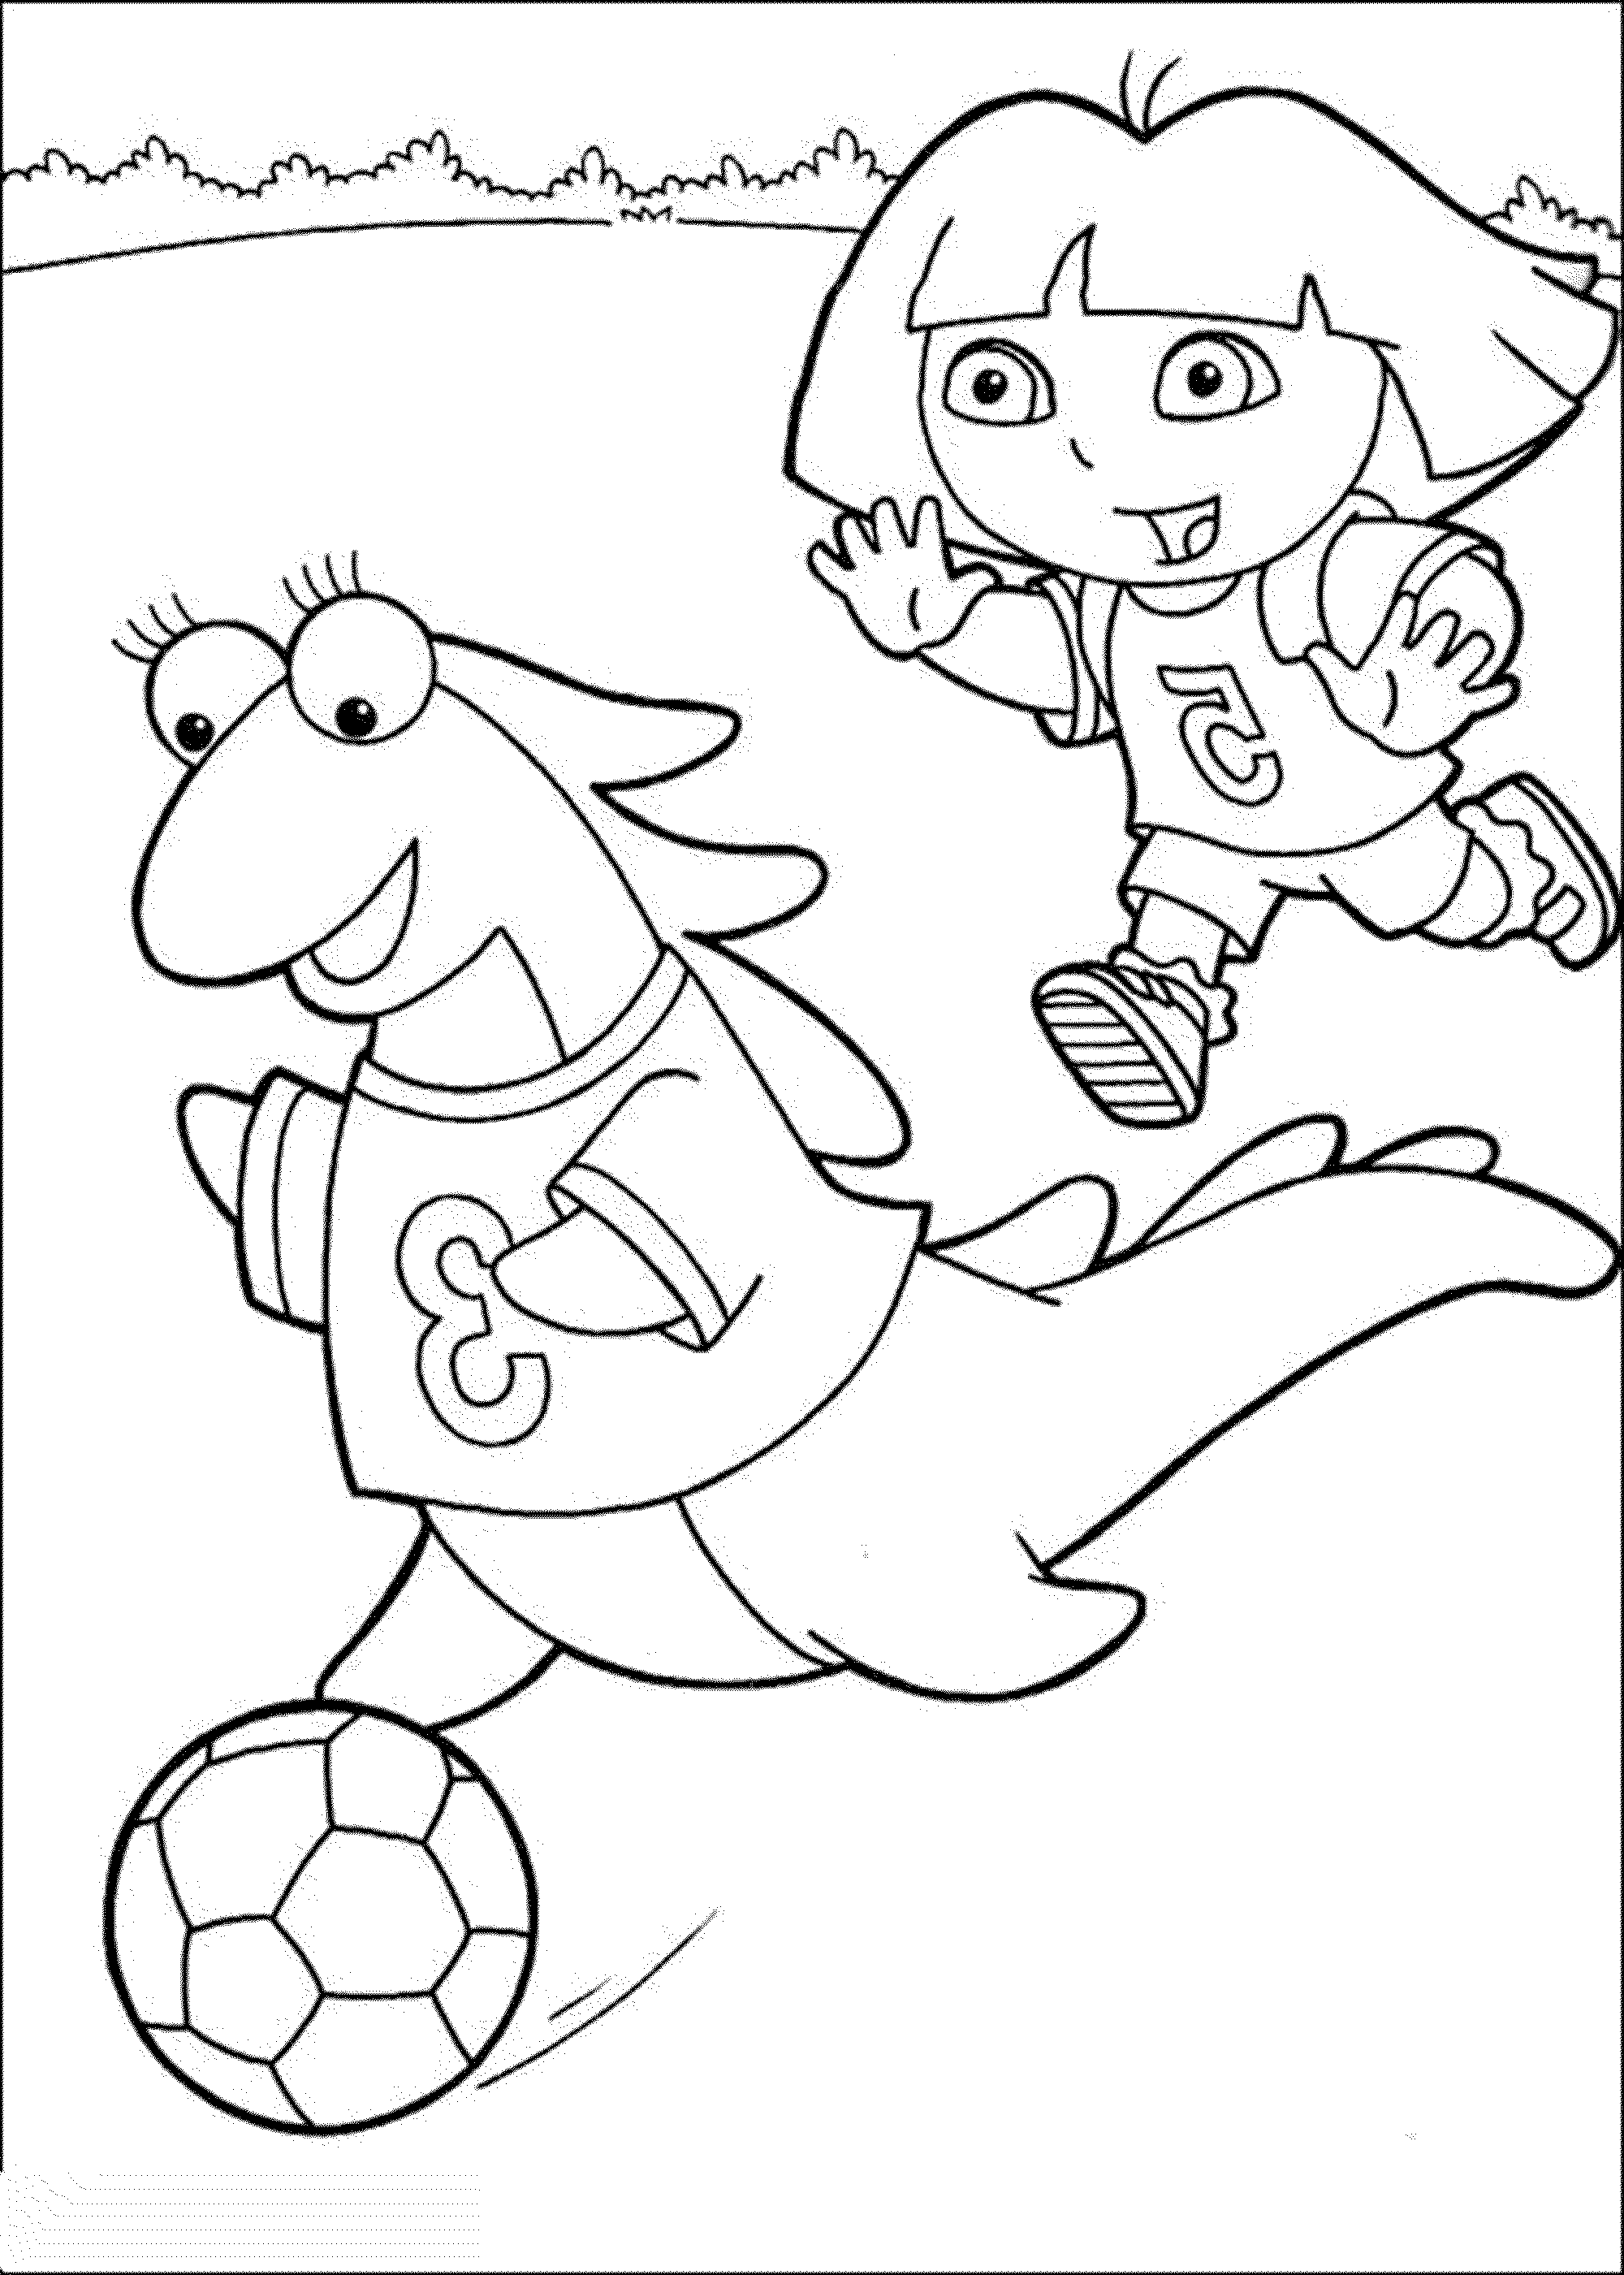 dora coloring pages to print dora coloring pages getcoloringpagescom print to coloring dora pages